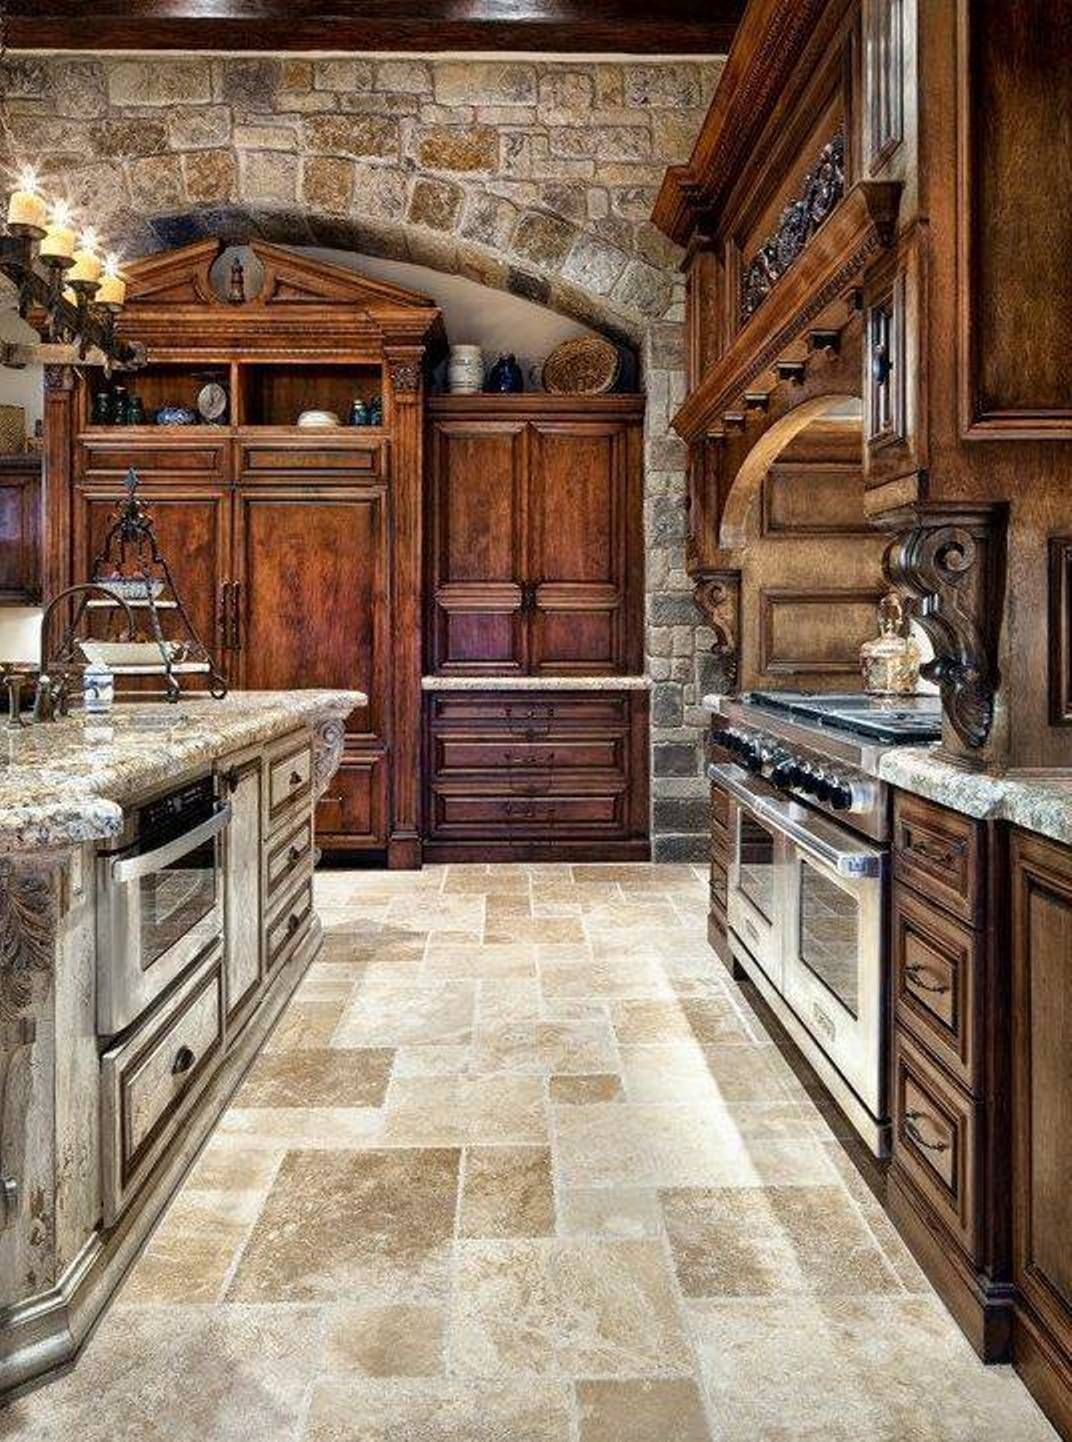 Bon Old World Tuscan Themed Kitchen Style With Arched Brick Wall